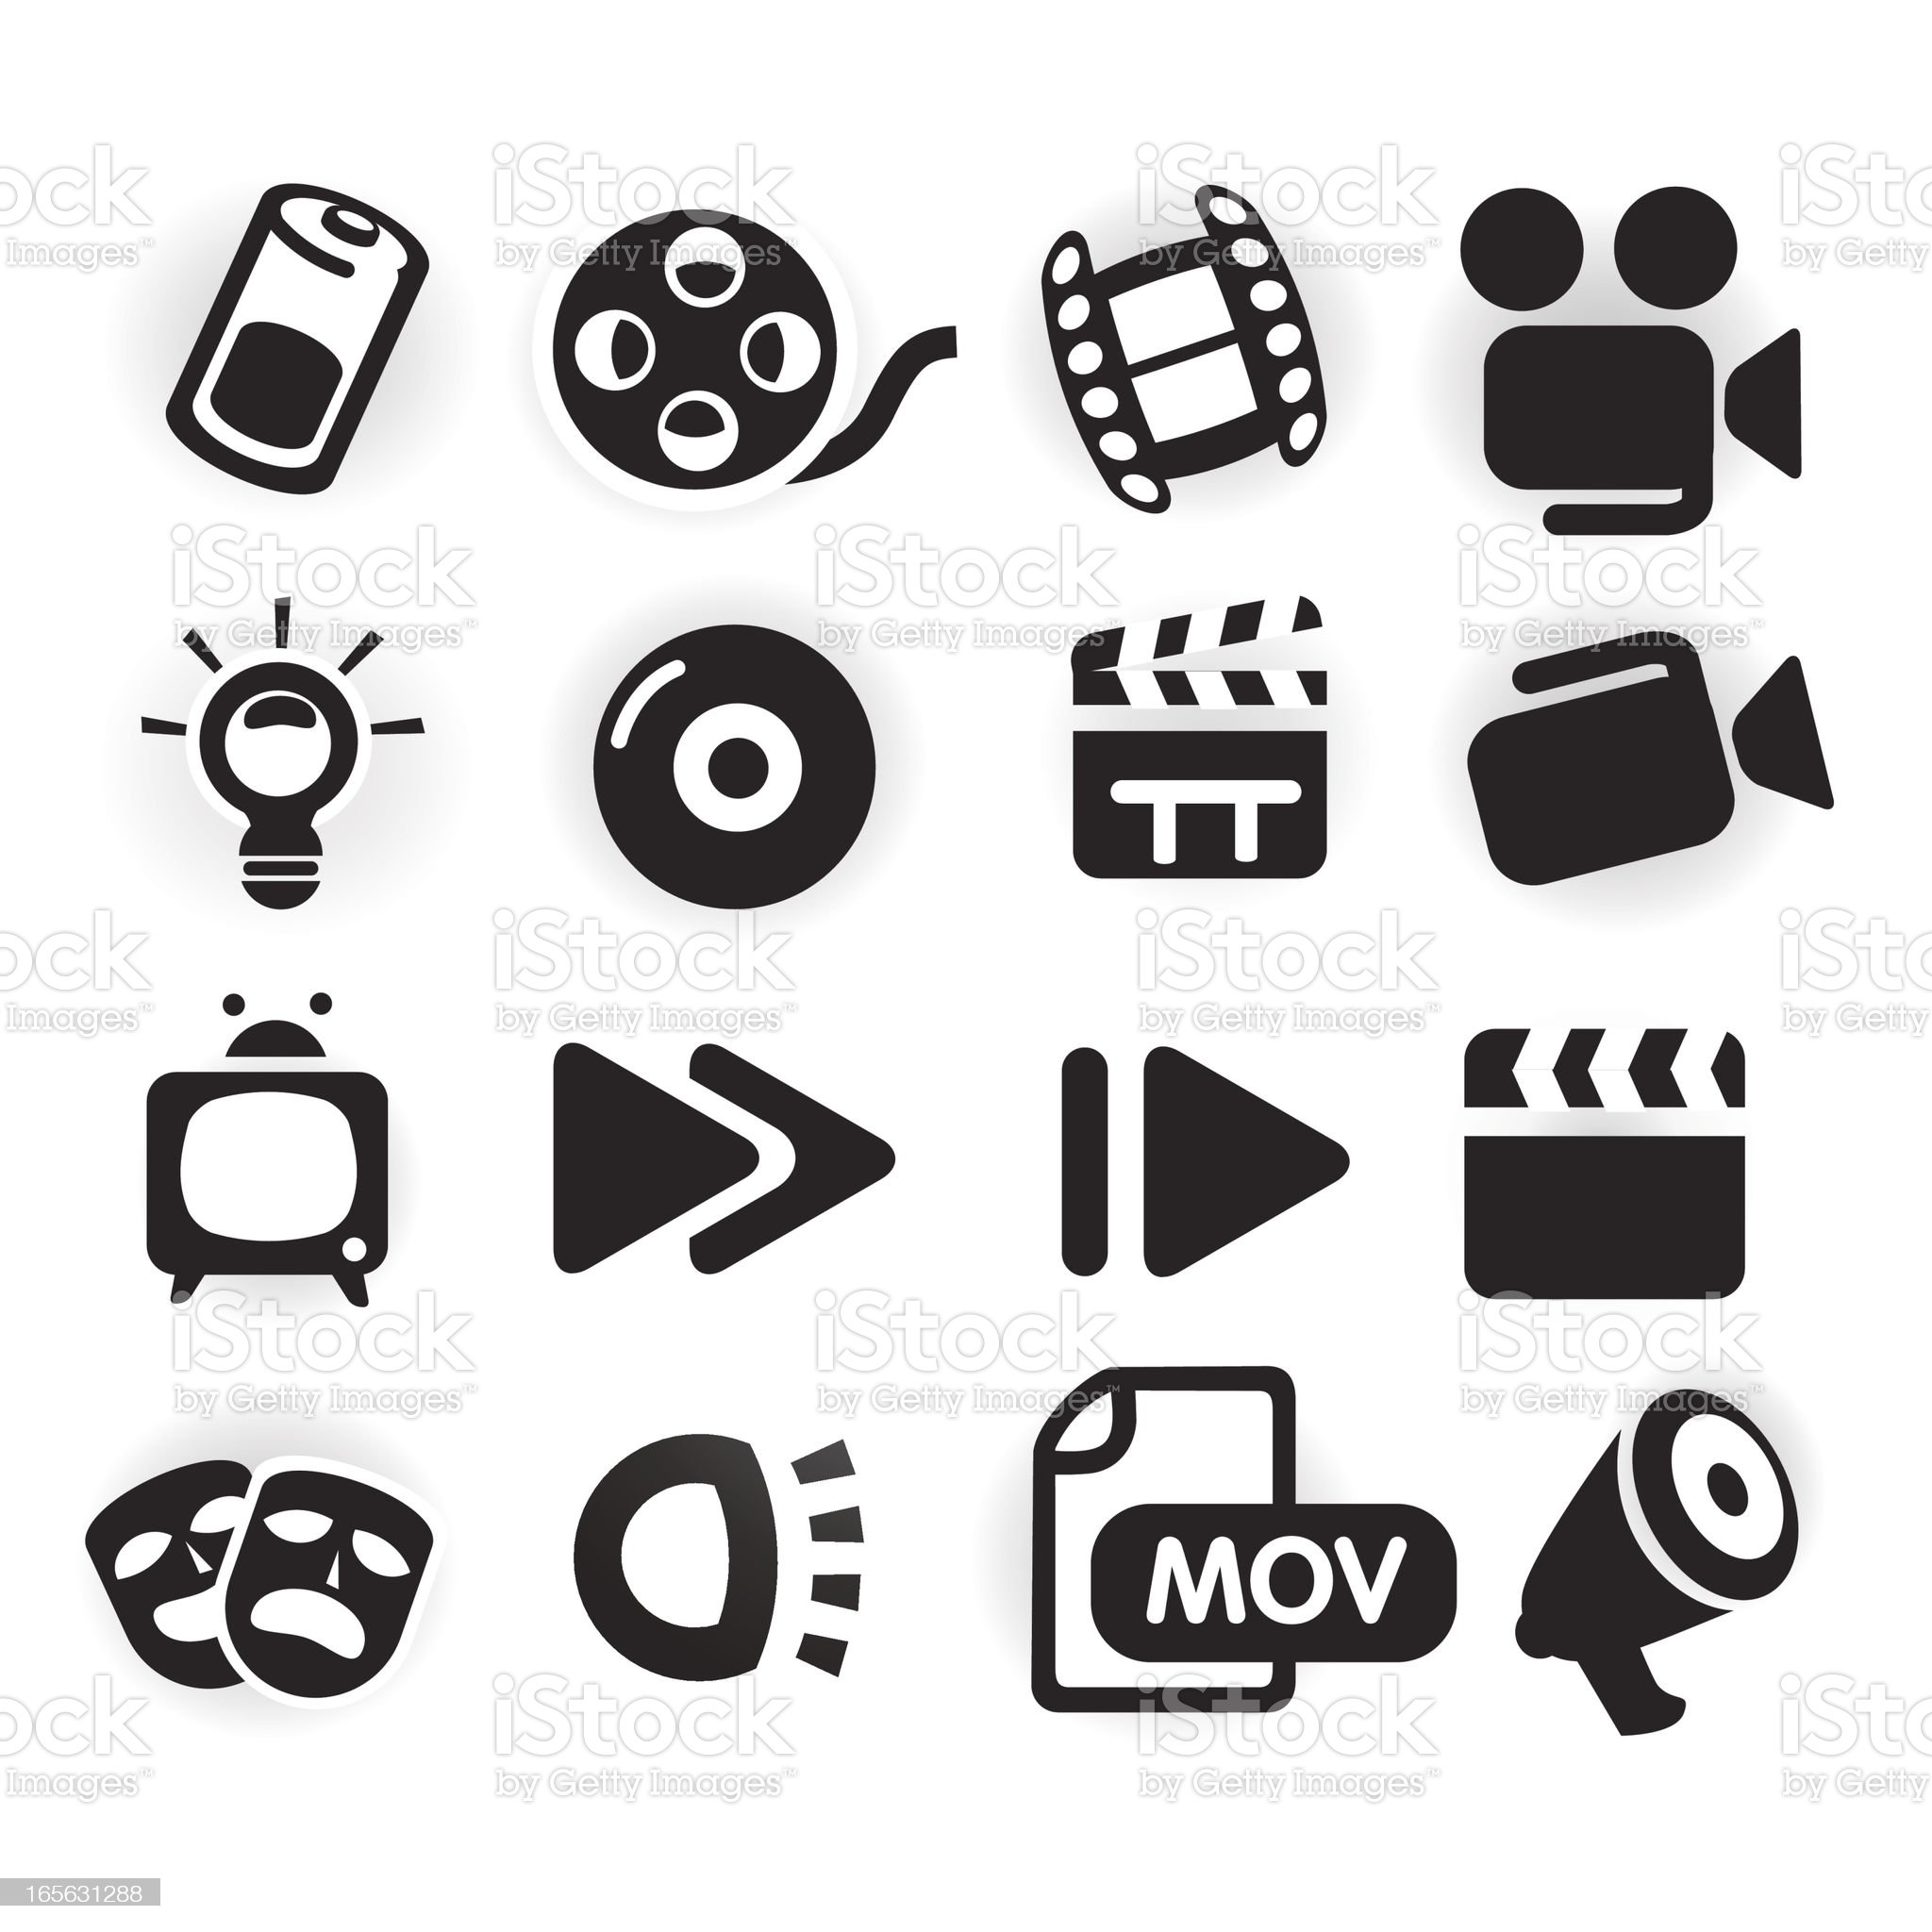 Black & White Series - Media Icons royalty-free stock vector art